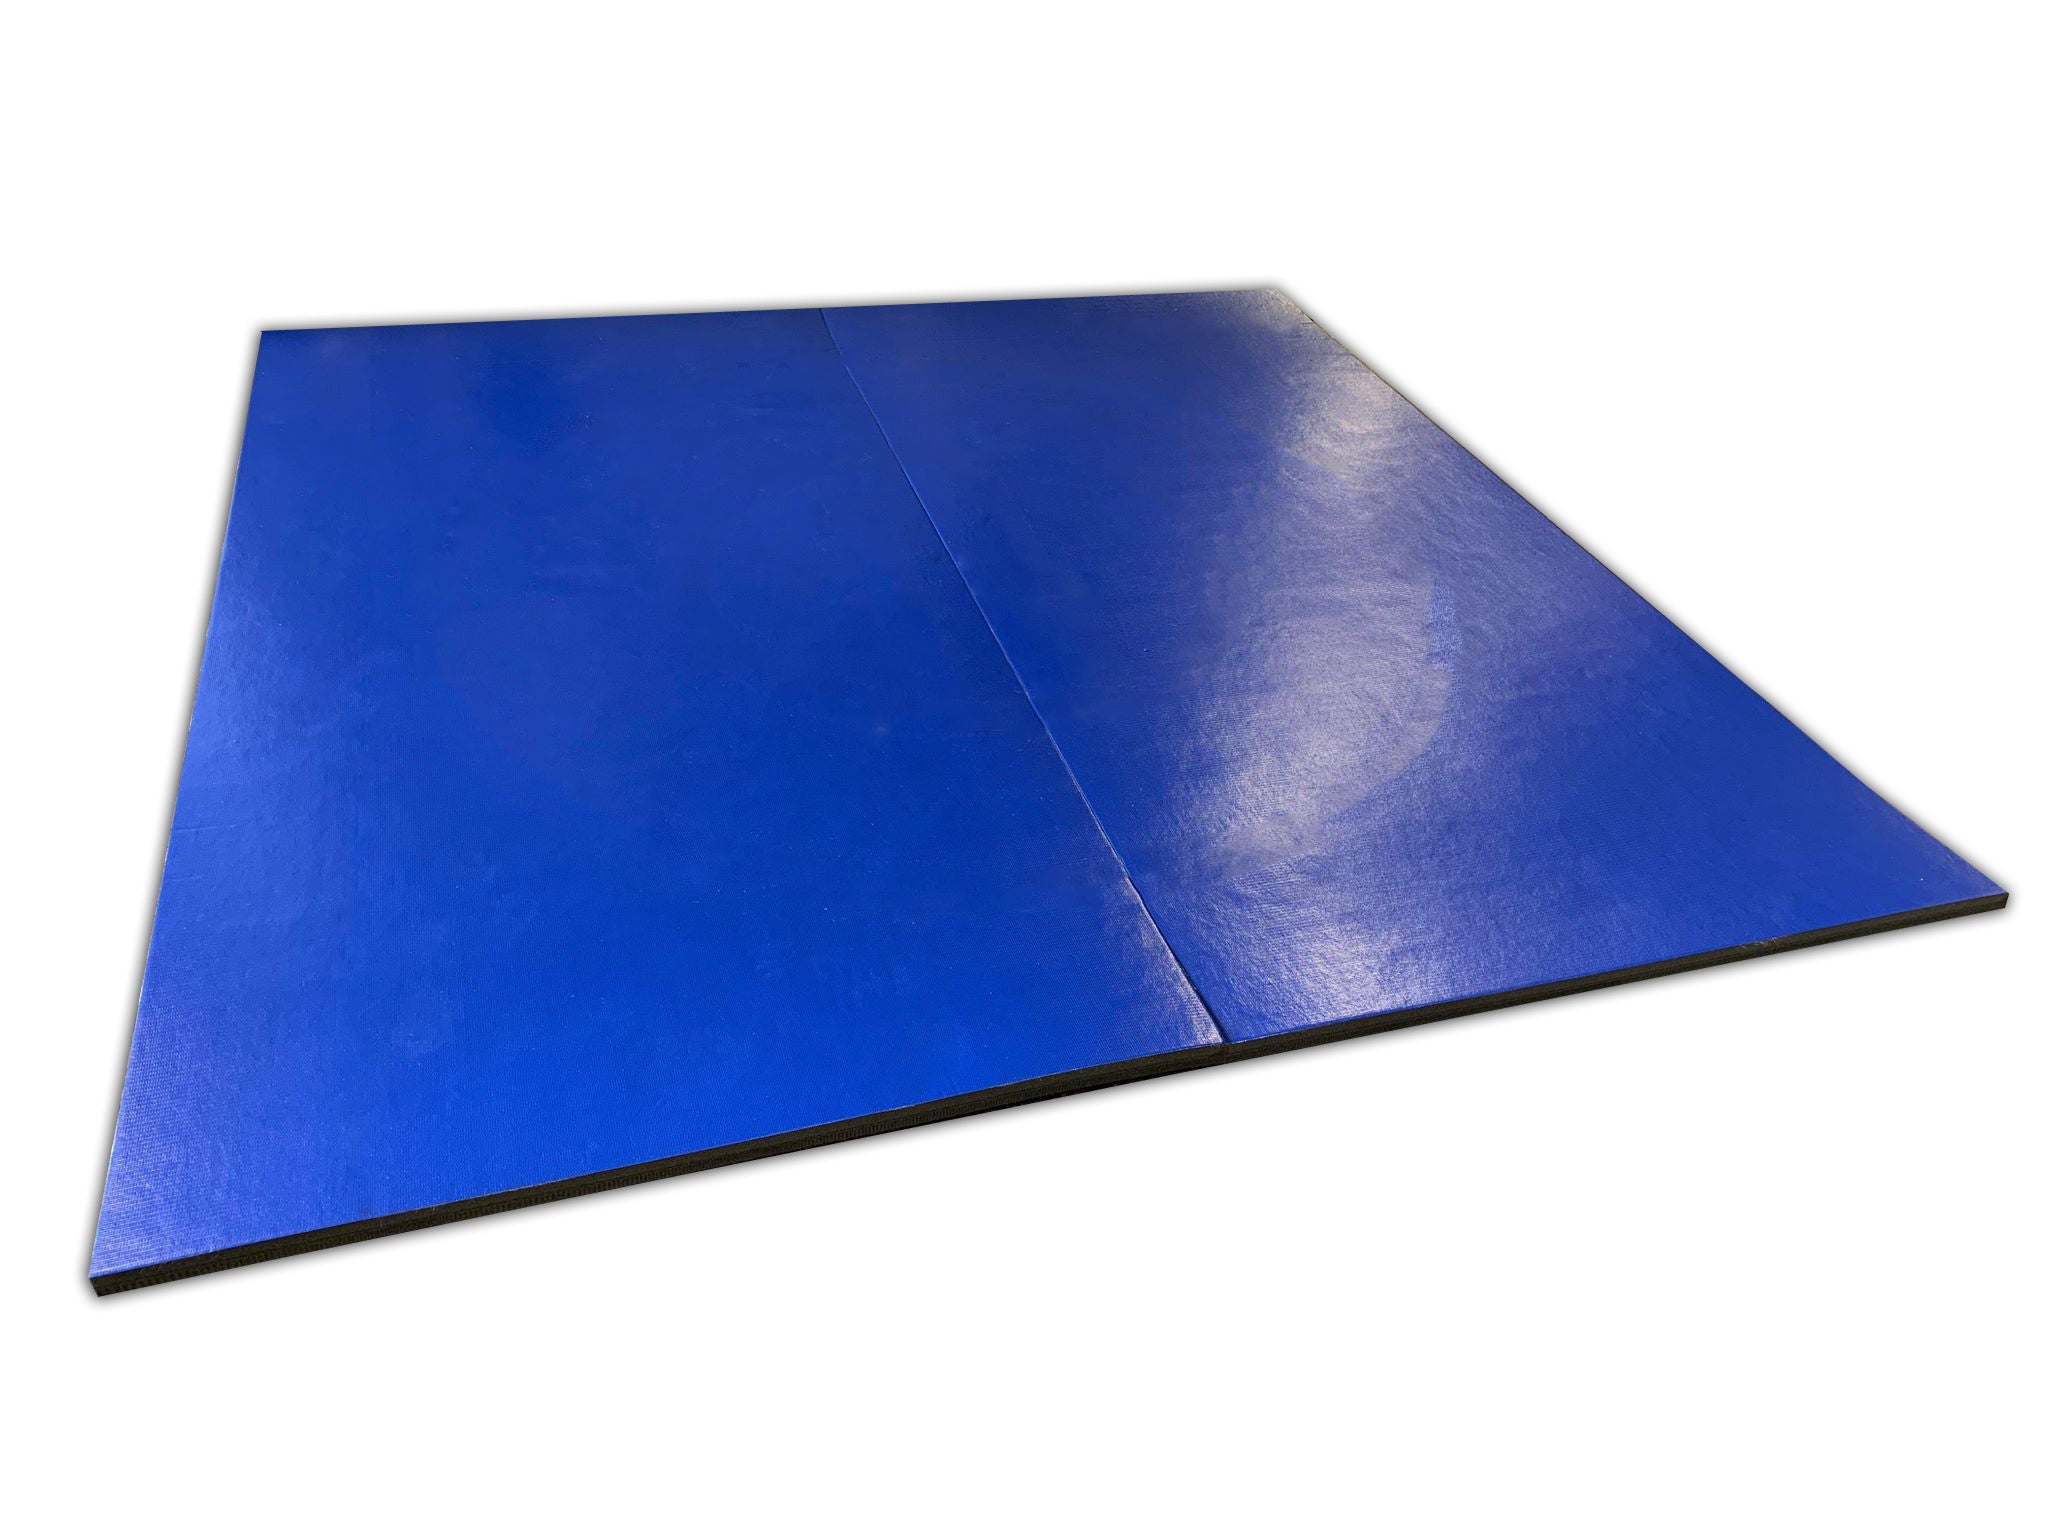 jiu jitsu mat light weight roll up 8' x 8'